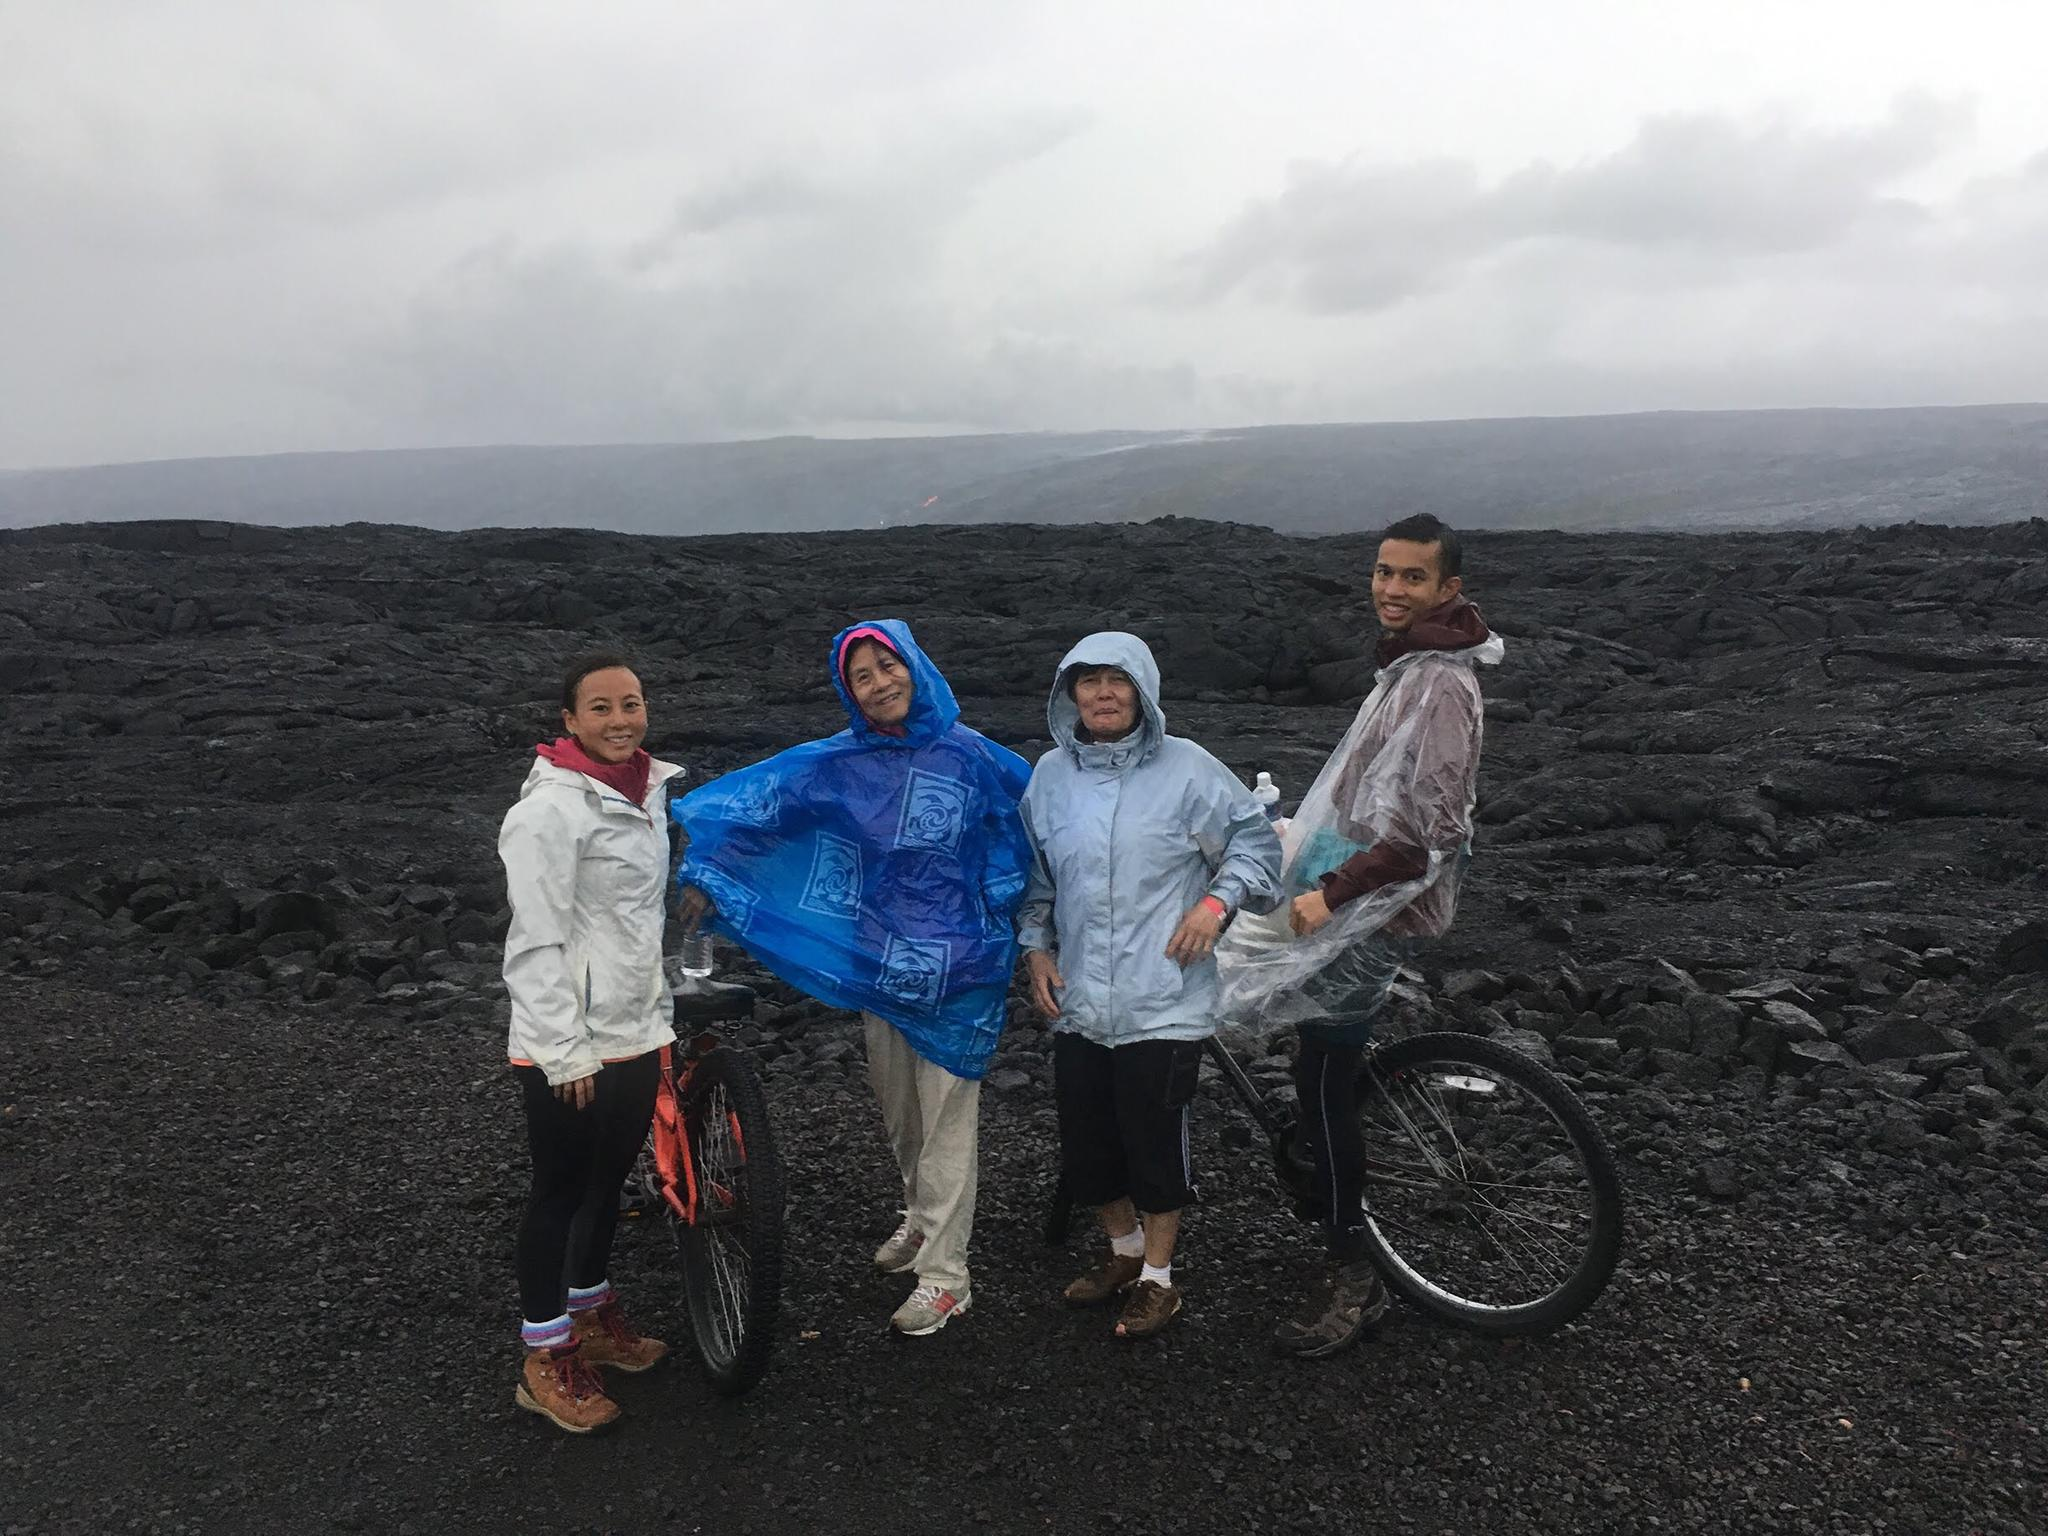 Biking/Hiking to see active lava flow in Big Island, December 2017